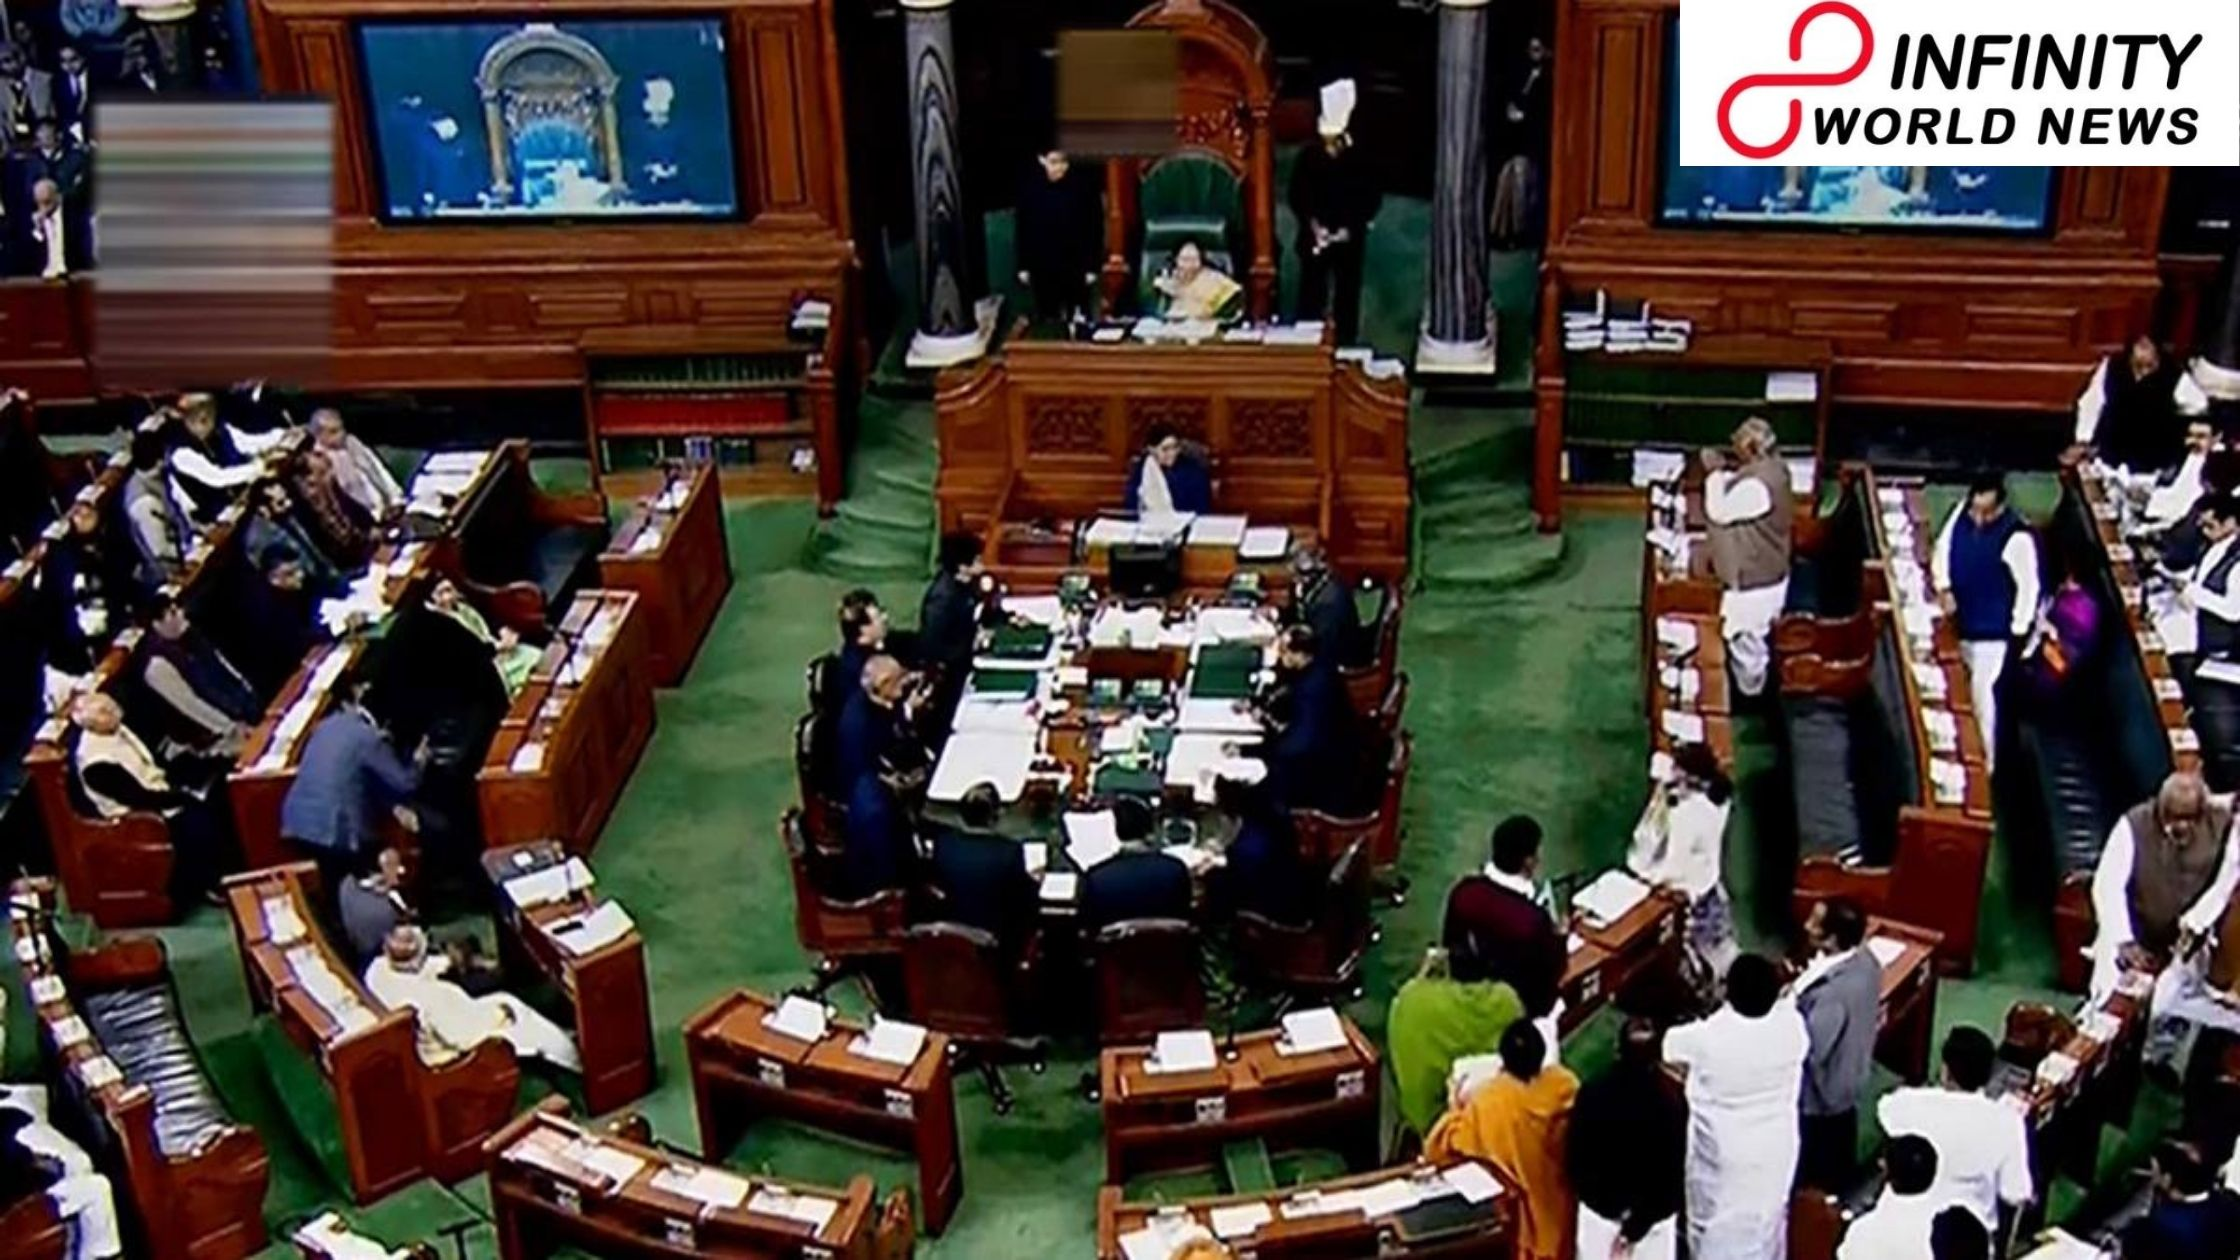 Lok Sabha dismissed till 7 pm following excitement by Opposition over farm laws